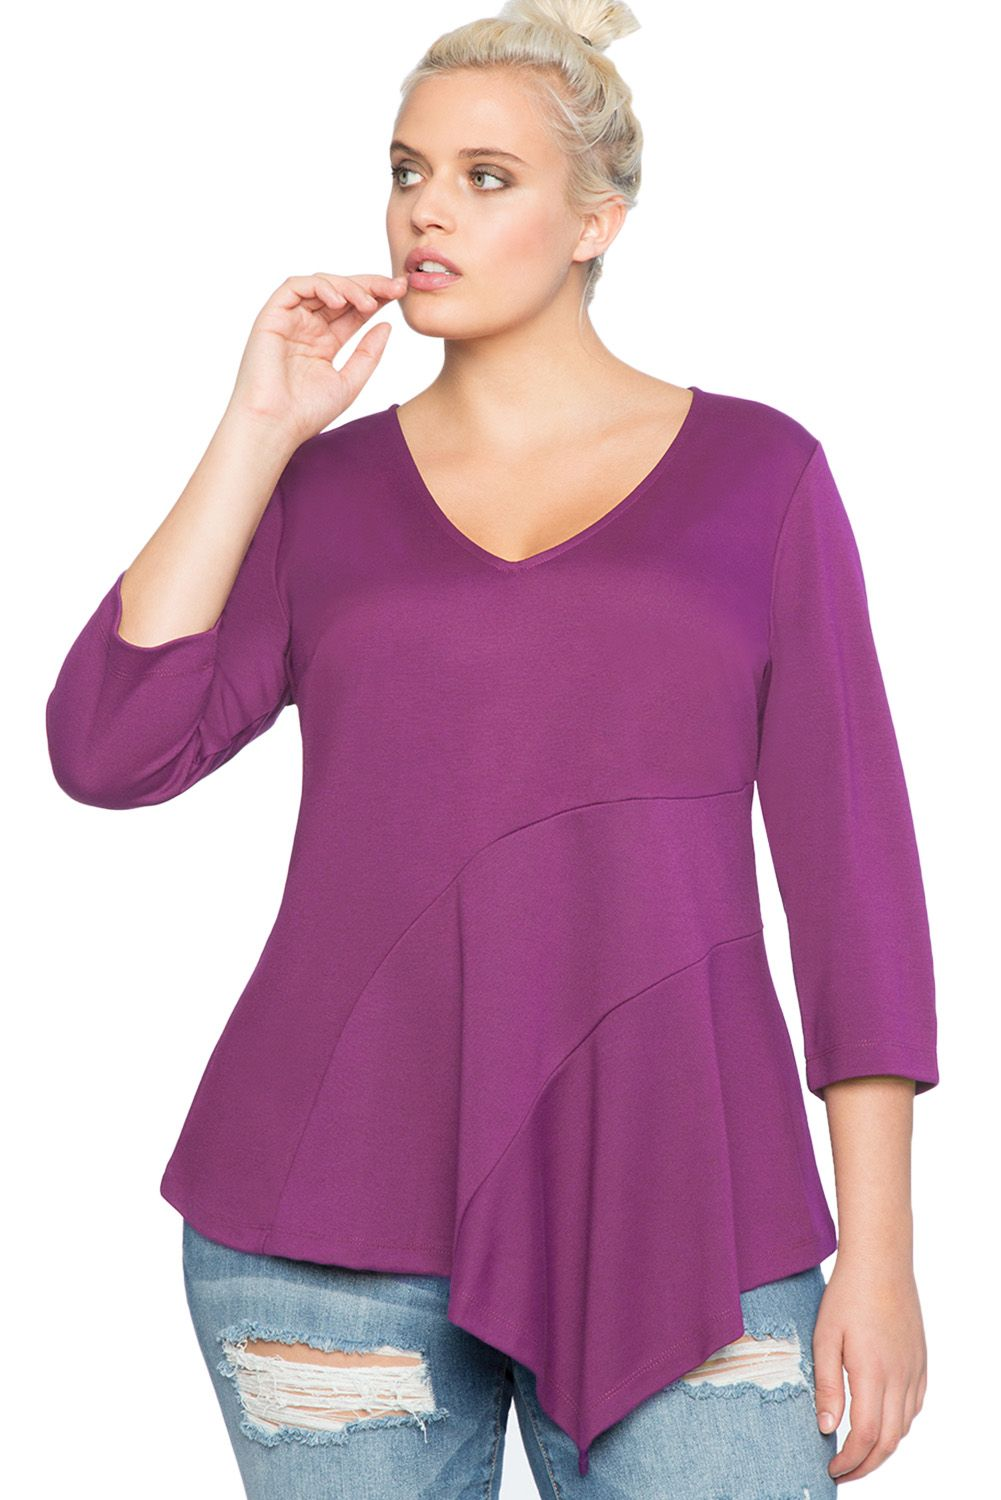 4913eba57a6e0 Purple Asymmetric Flounce Plus Size Peplum Top in 2019